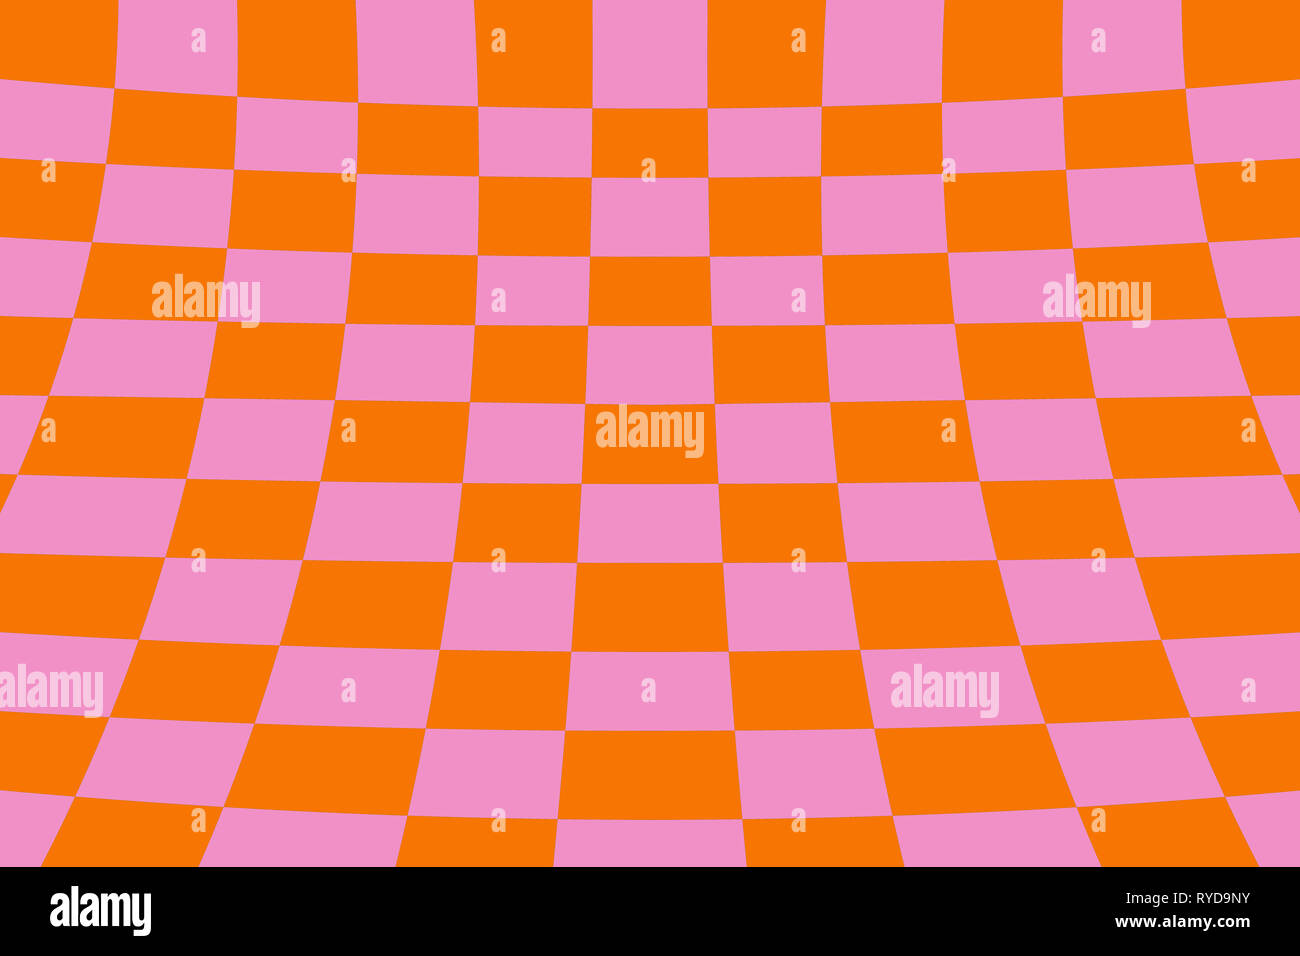 Warped perspective coloured checker board effect grid illustration orange and pink - Stock Image